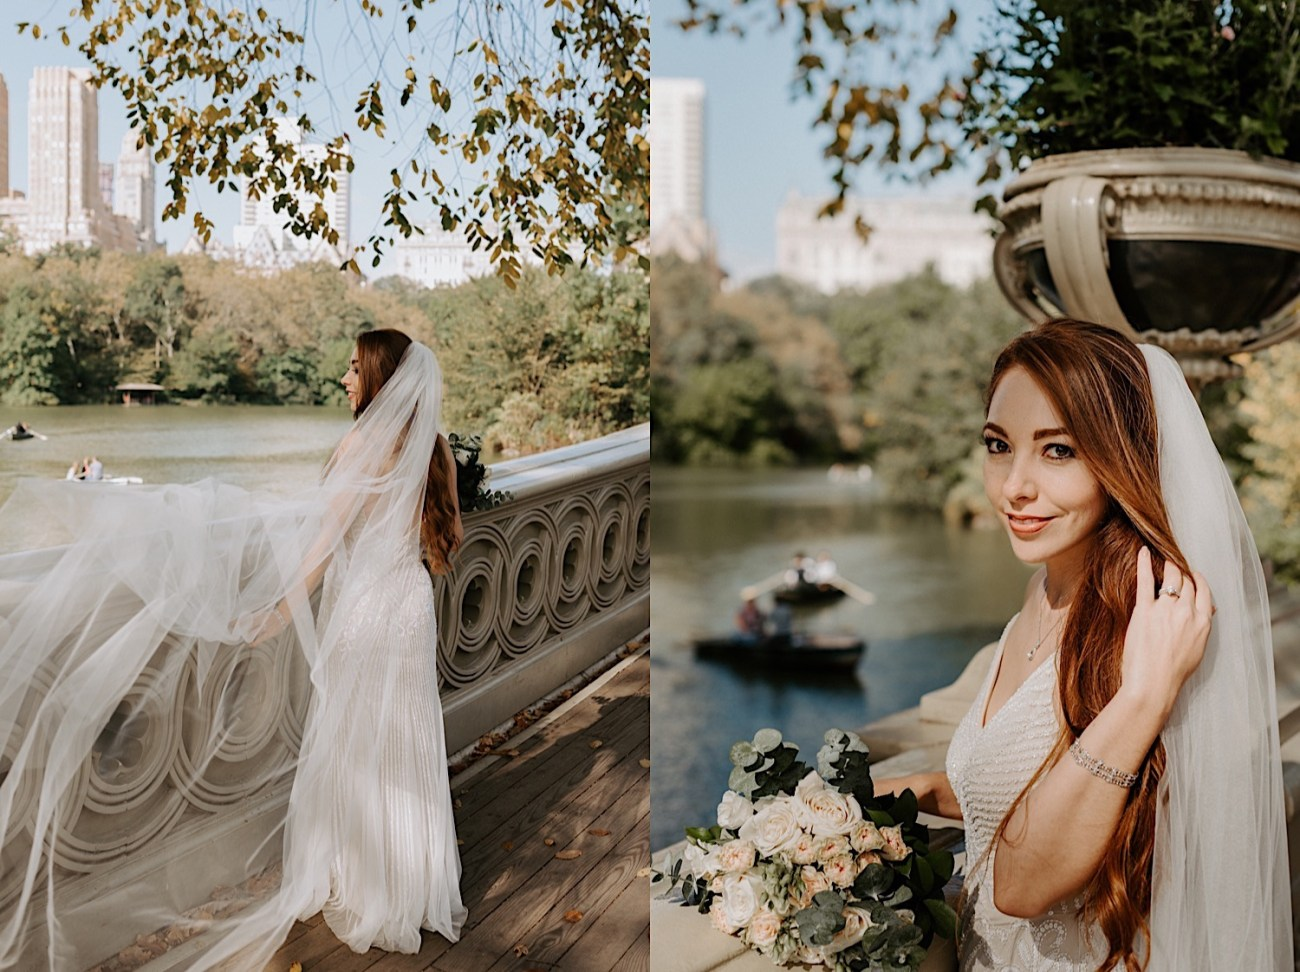 Central Park Wedding Photos Central Park Elopement NYC Wedding Photographer 25